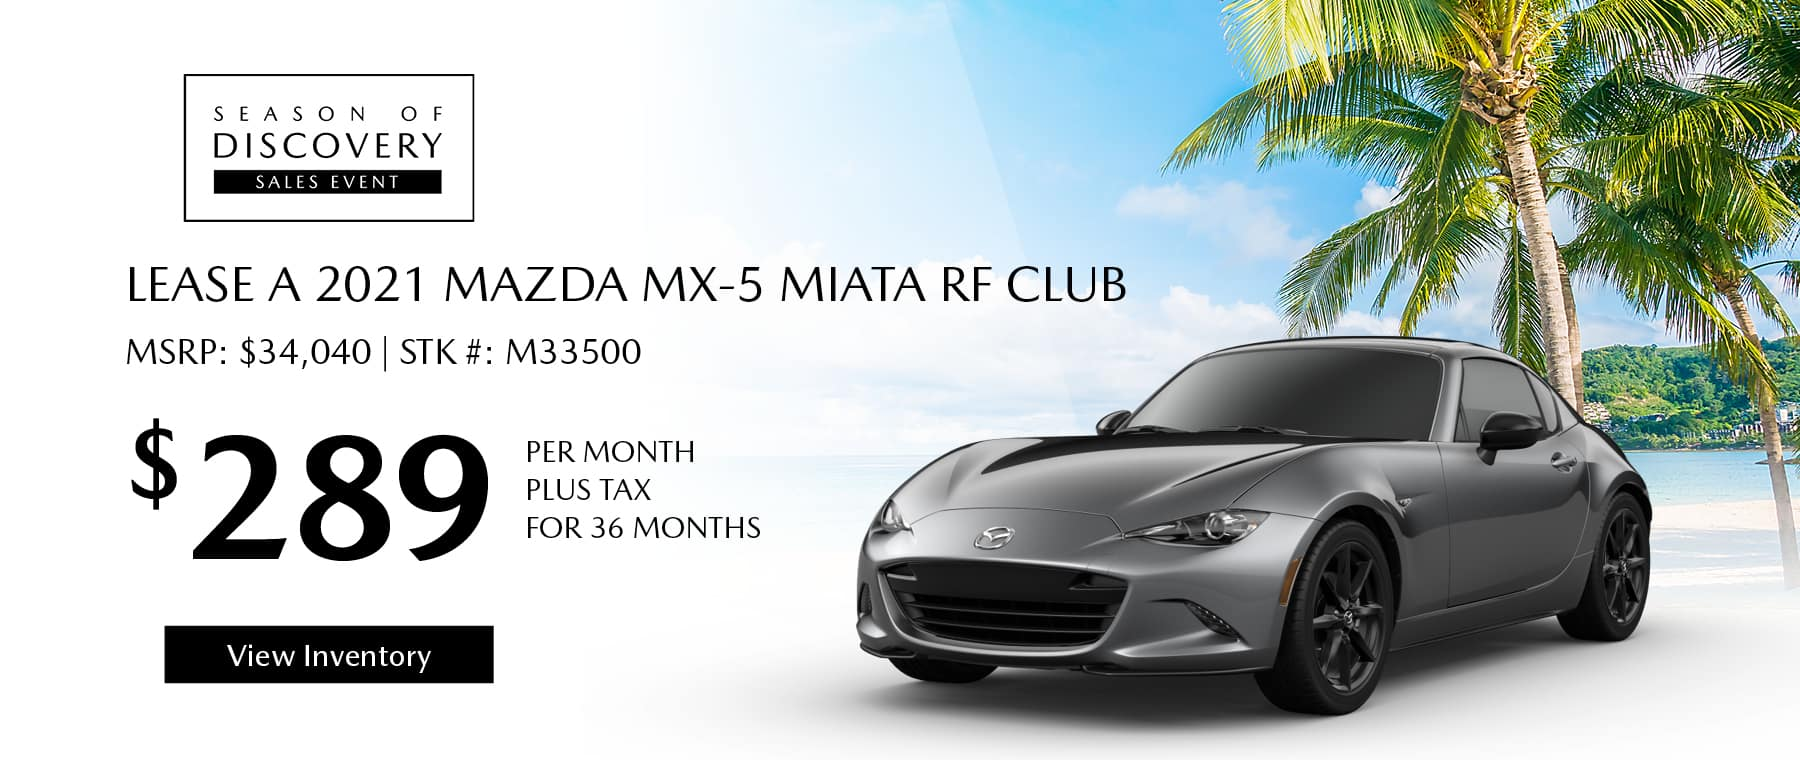 Lease the 2021 Mazda MX-5 Miata RF Club for $289 per month, plus tax for 36 months. Click or tap here to view our inventory.